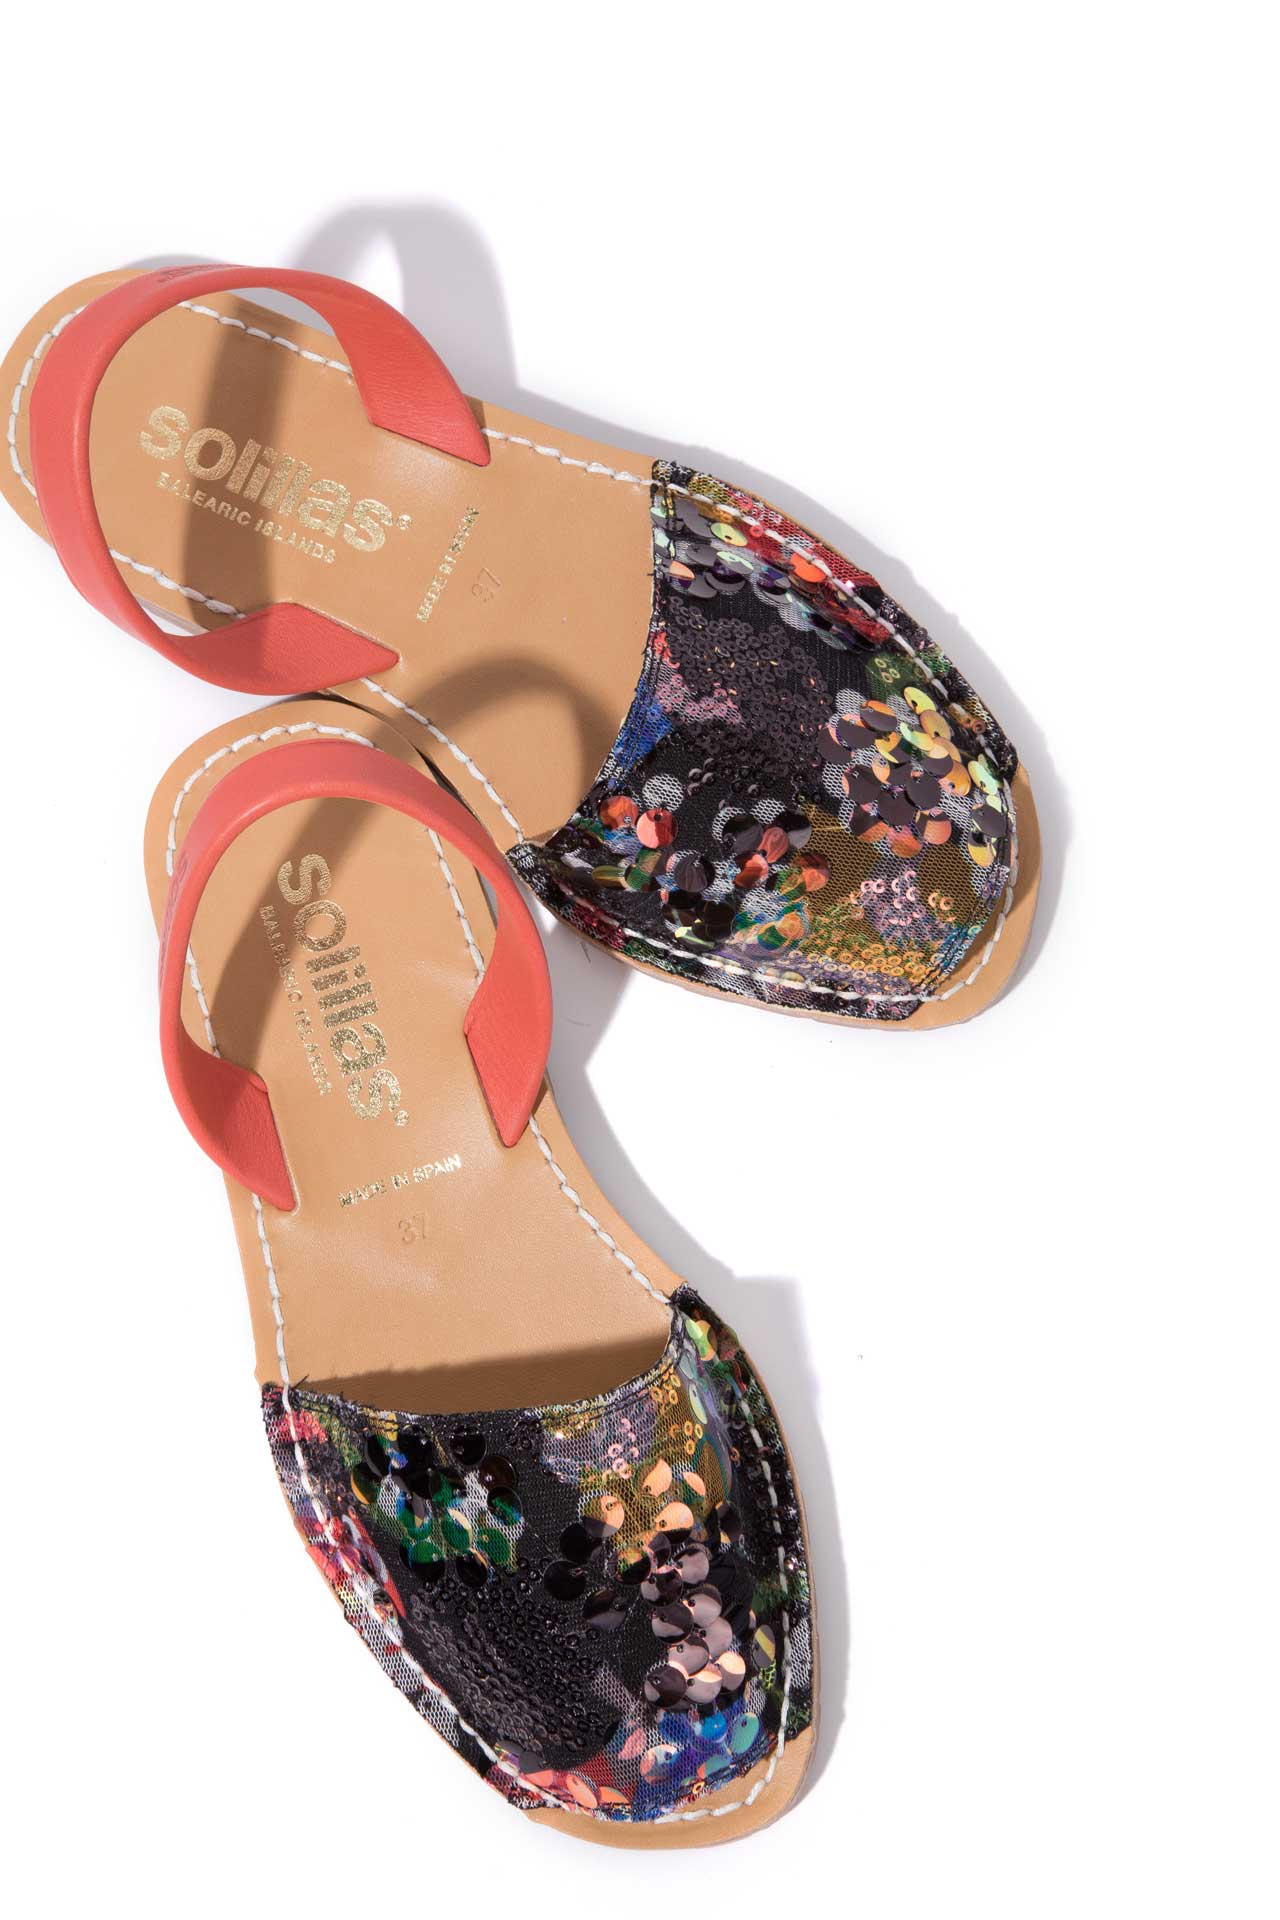 DANZA - Sequins & Red Leather Menorcan sandals